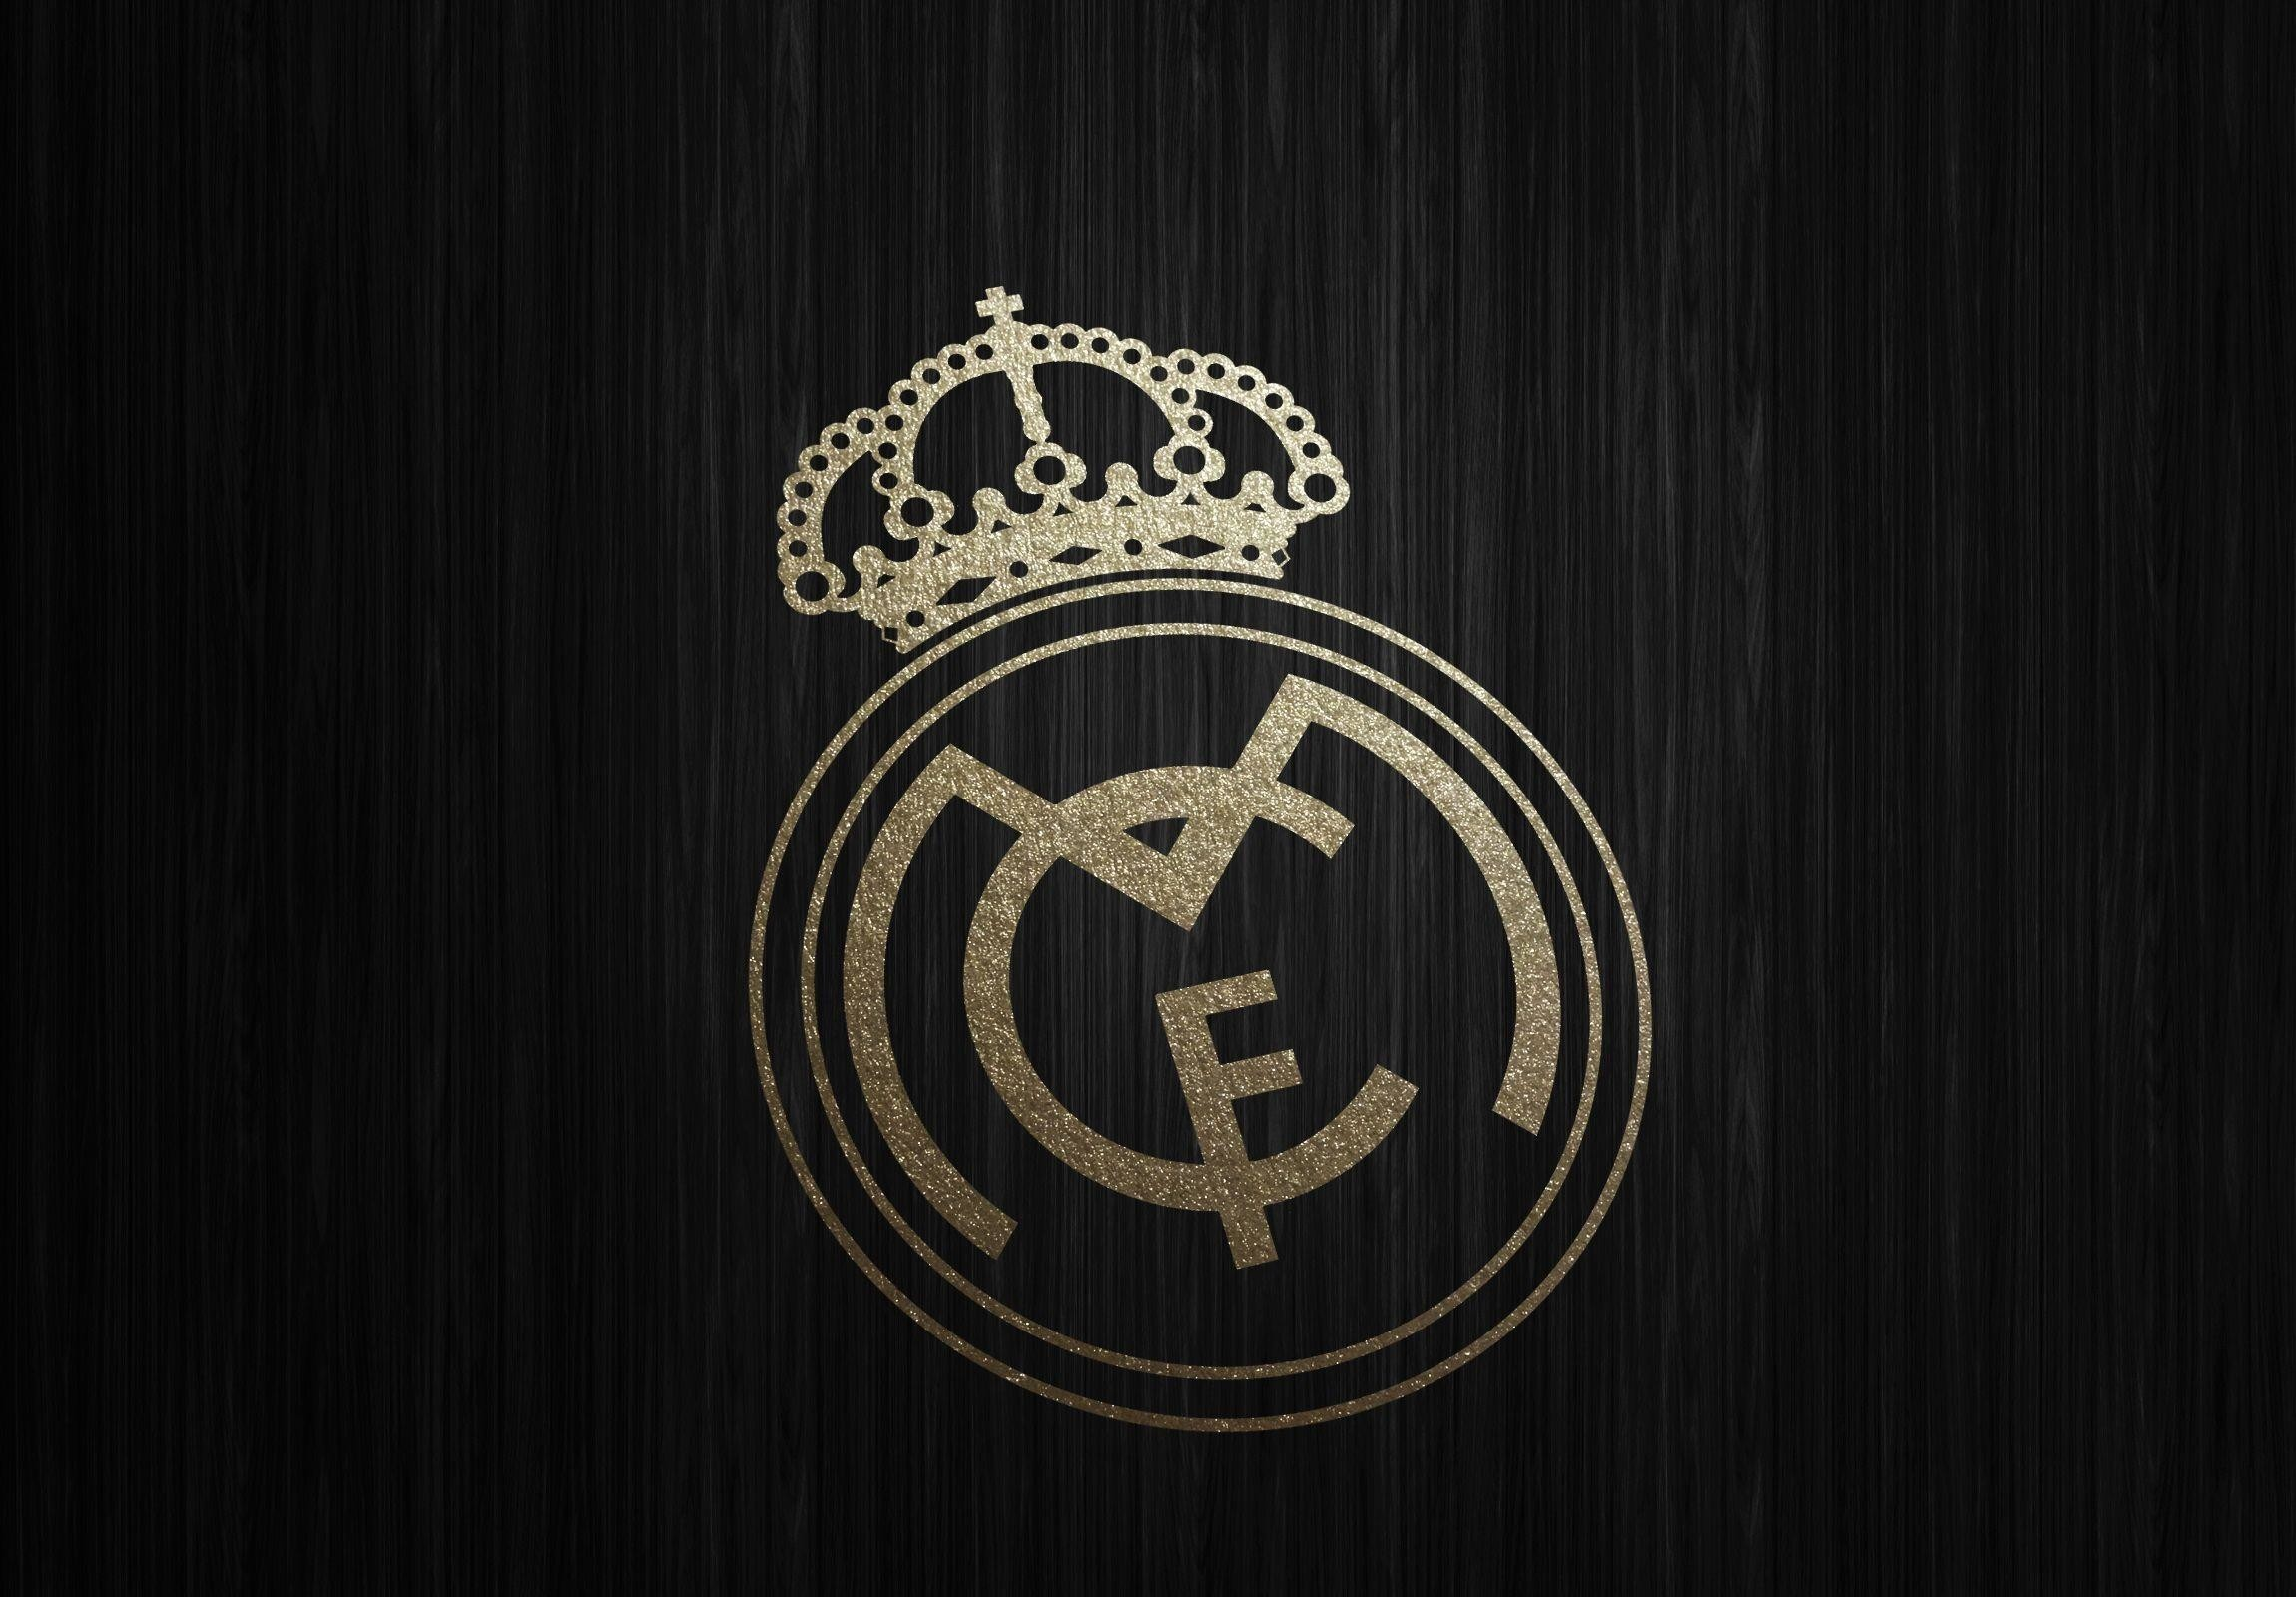 Free Download 86 Real Madrid Wallpapers On Wallpaperplay